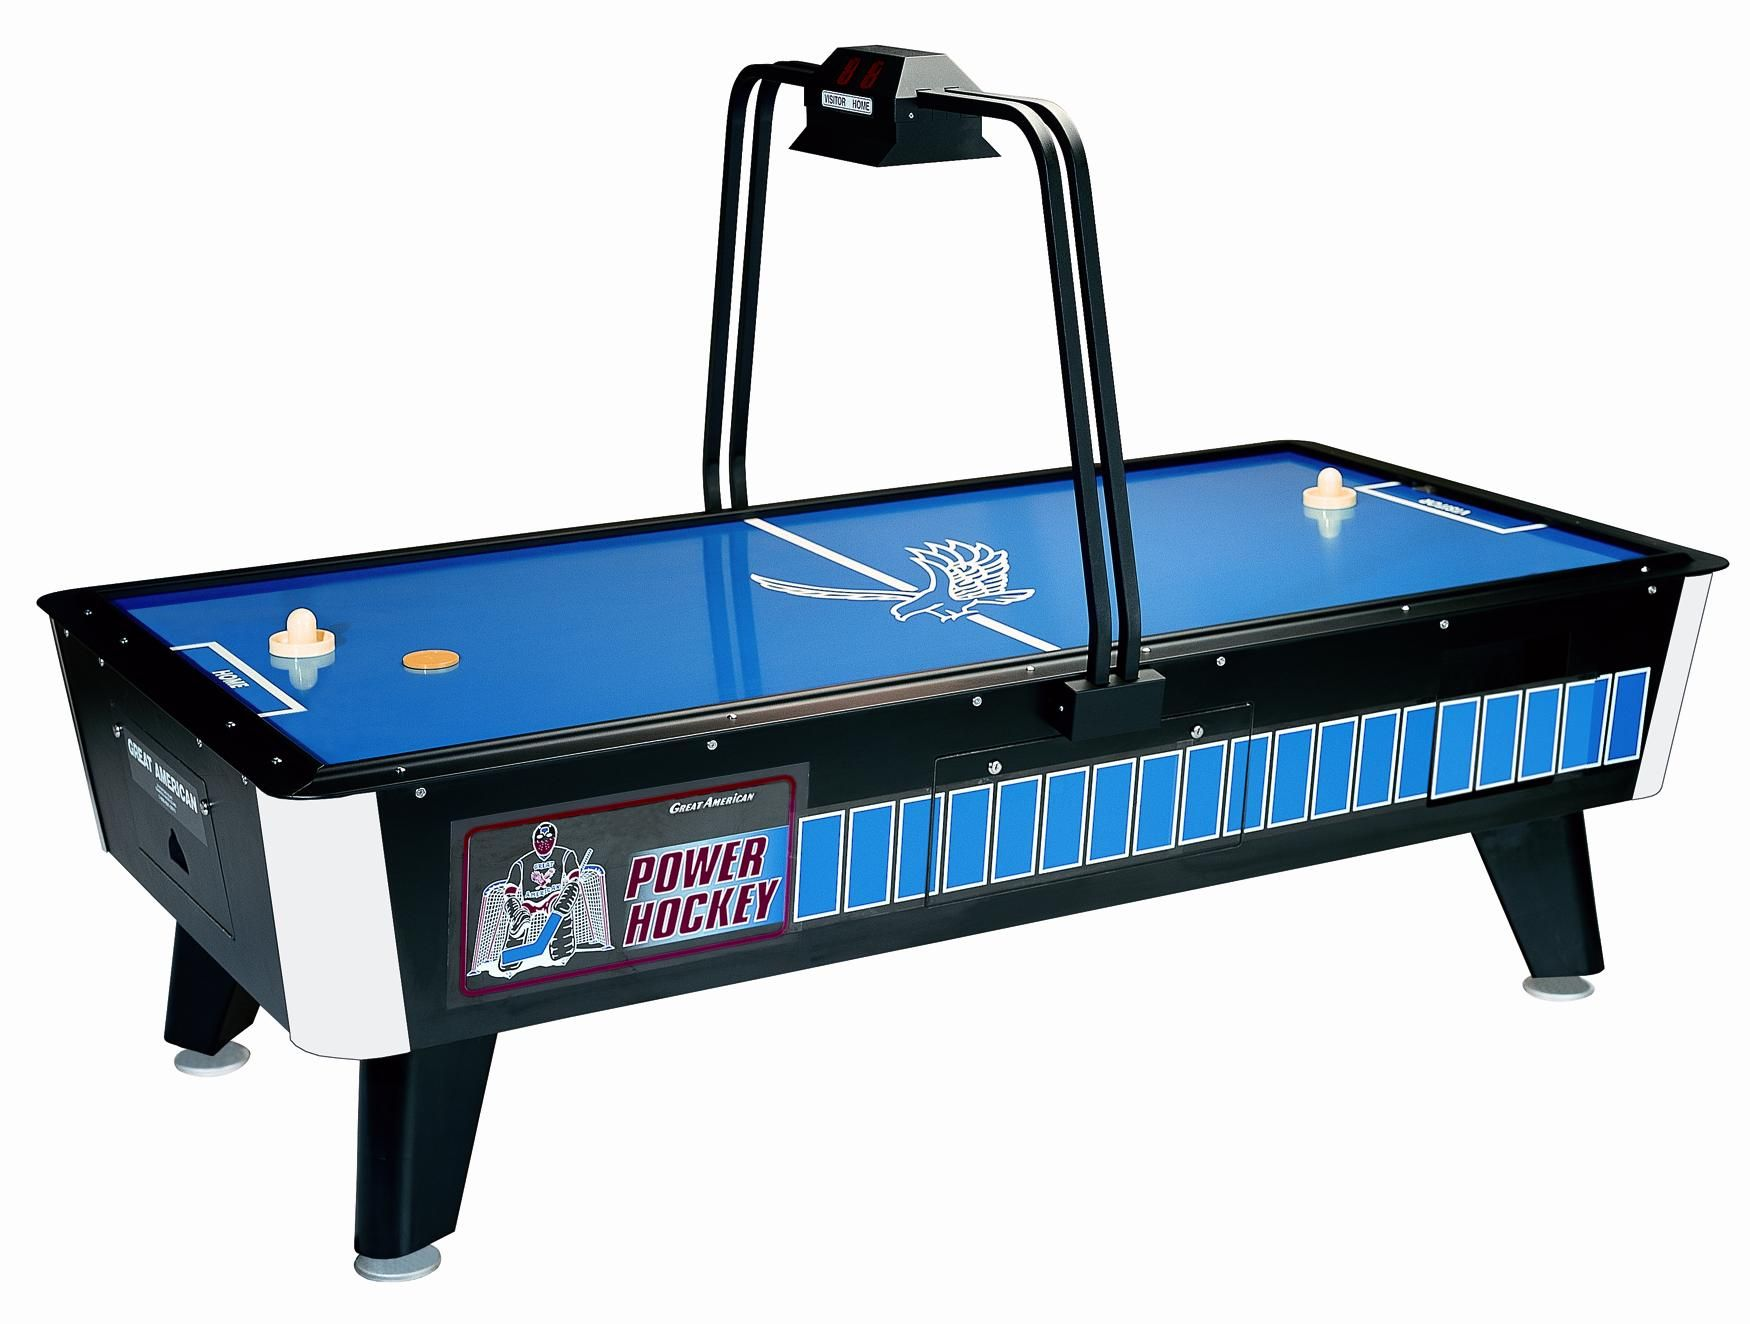 Air Hockey Table Troubleshooting Guide Air Hockey Air Hockey Table Air Hockey Tables